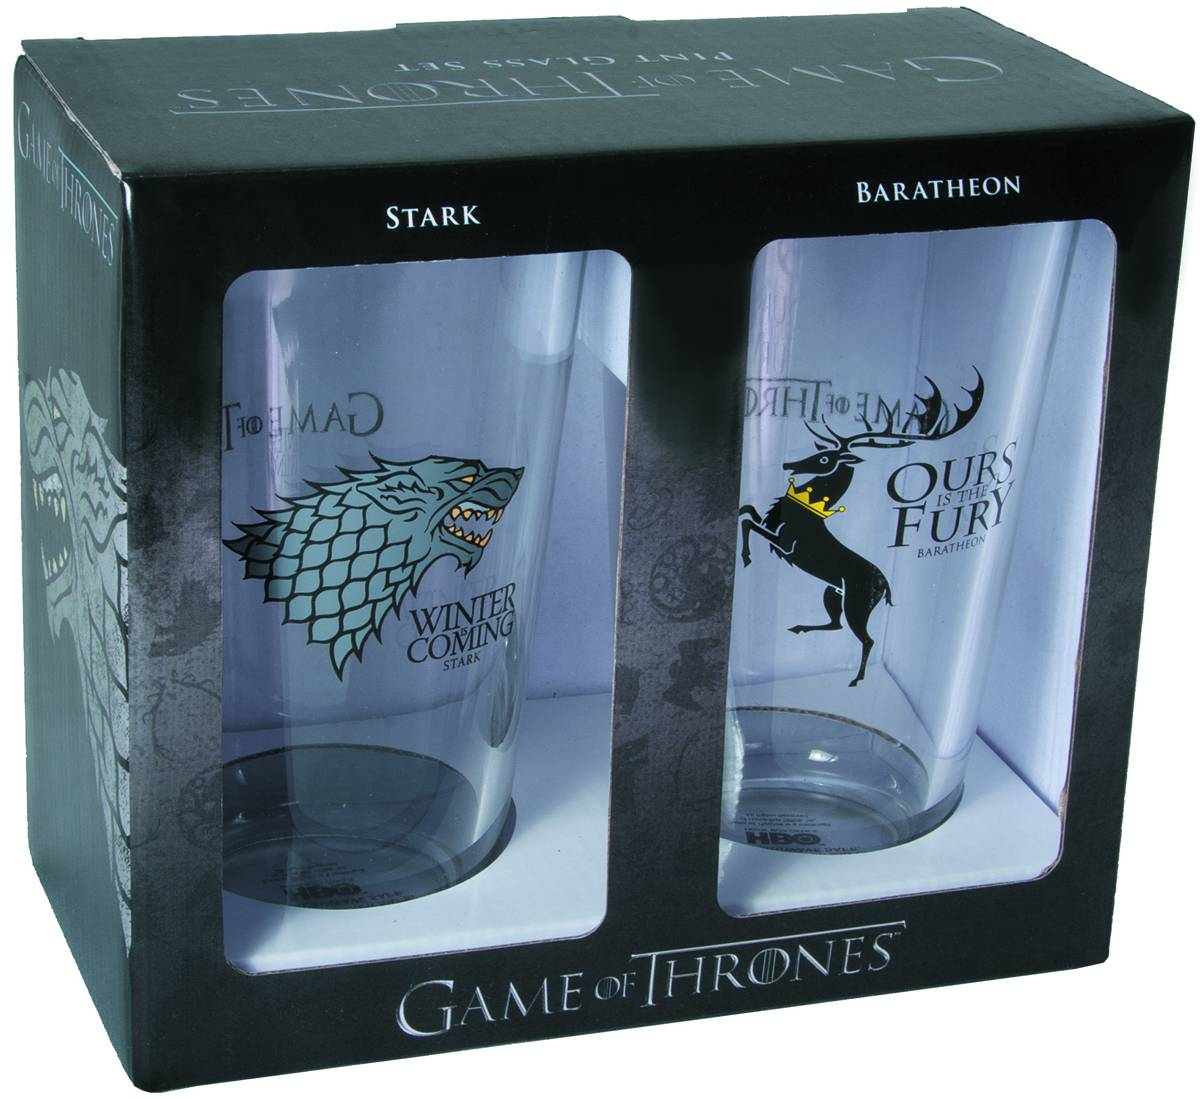 GAME OF THRONES PINT GLASS SET STARK & BARATHEON